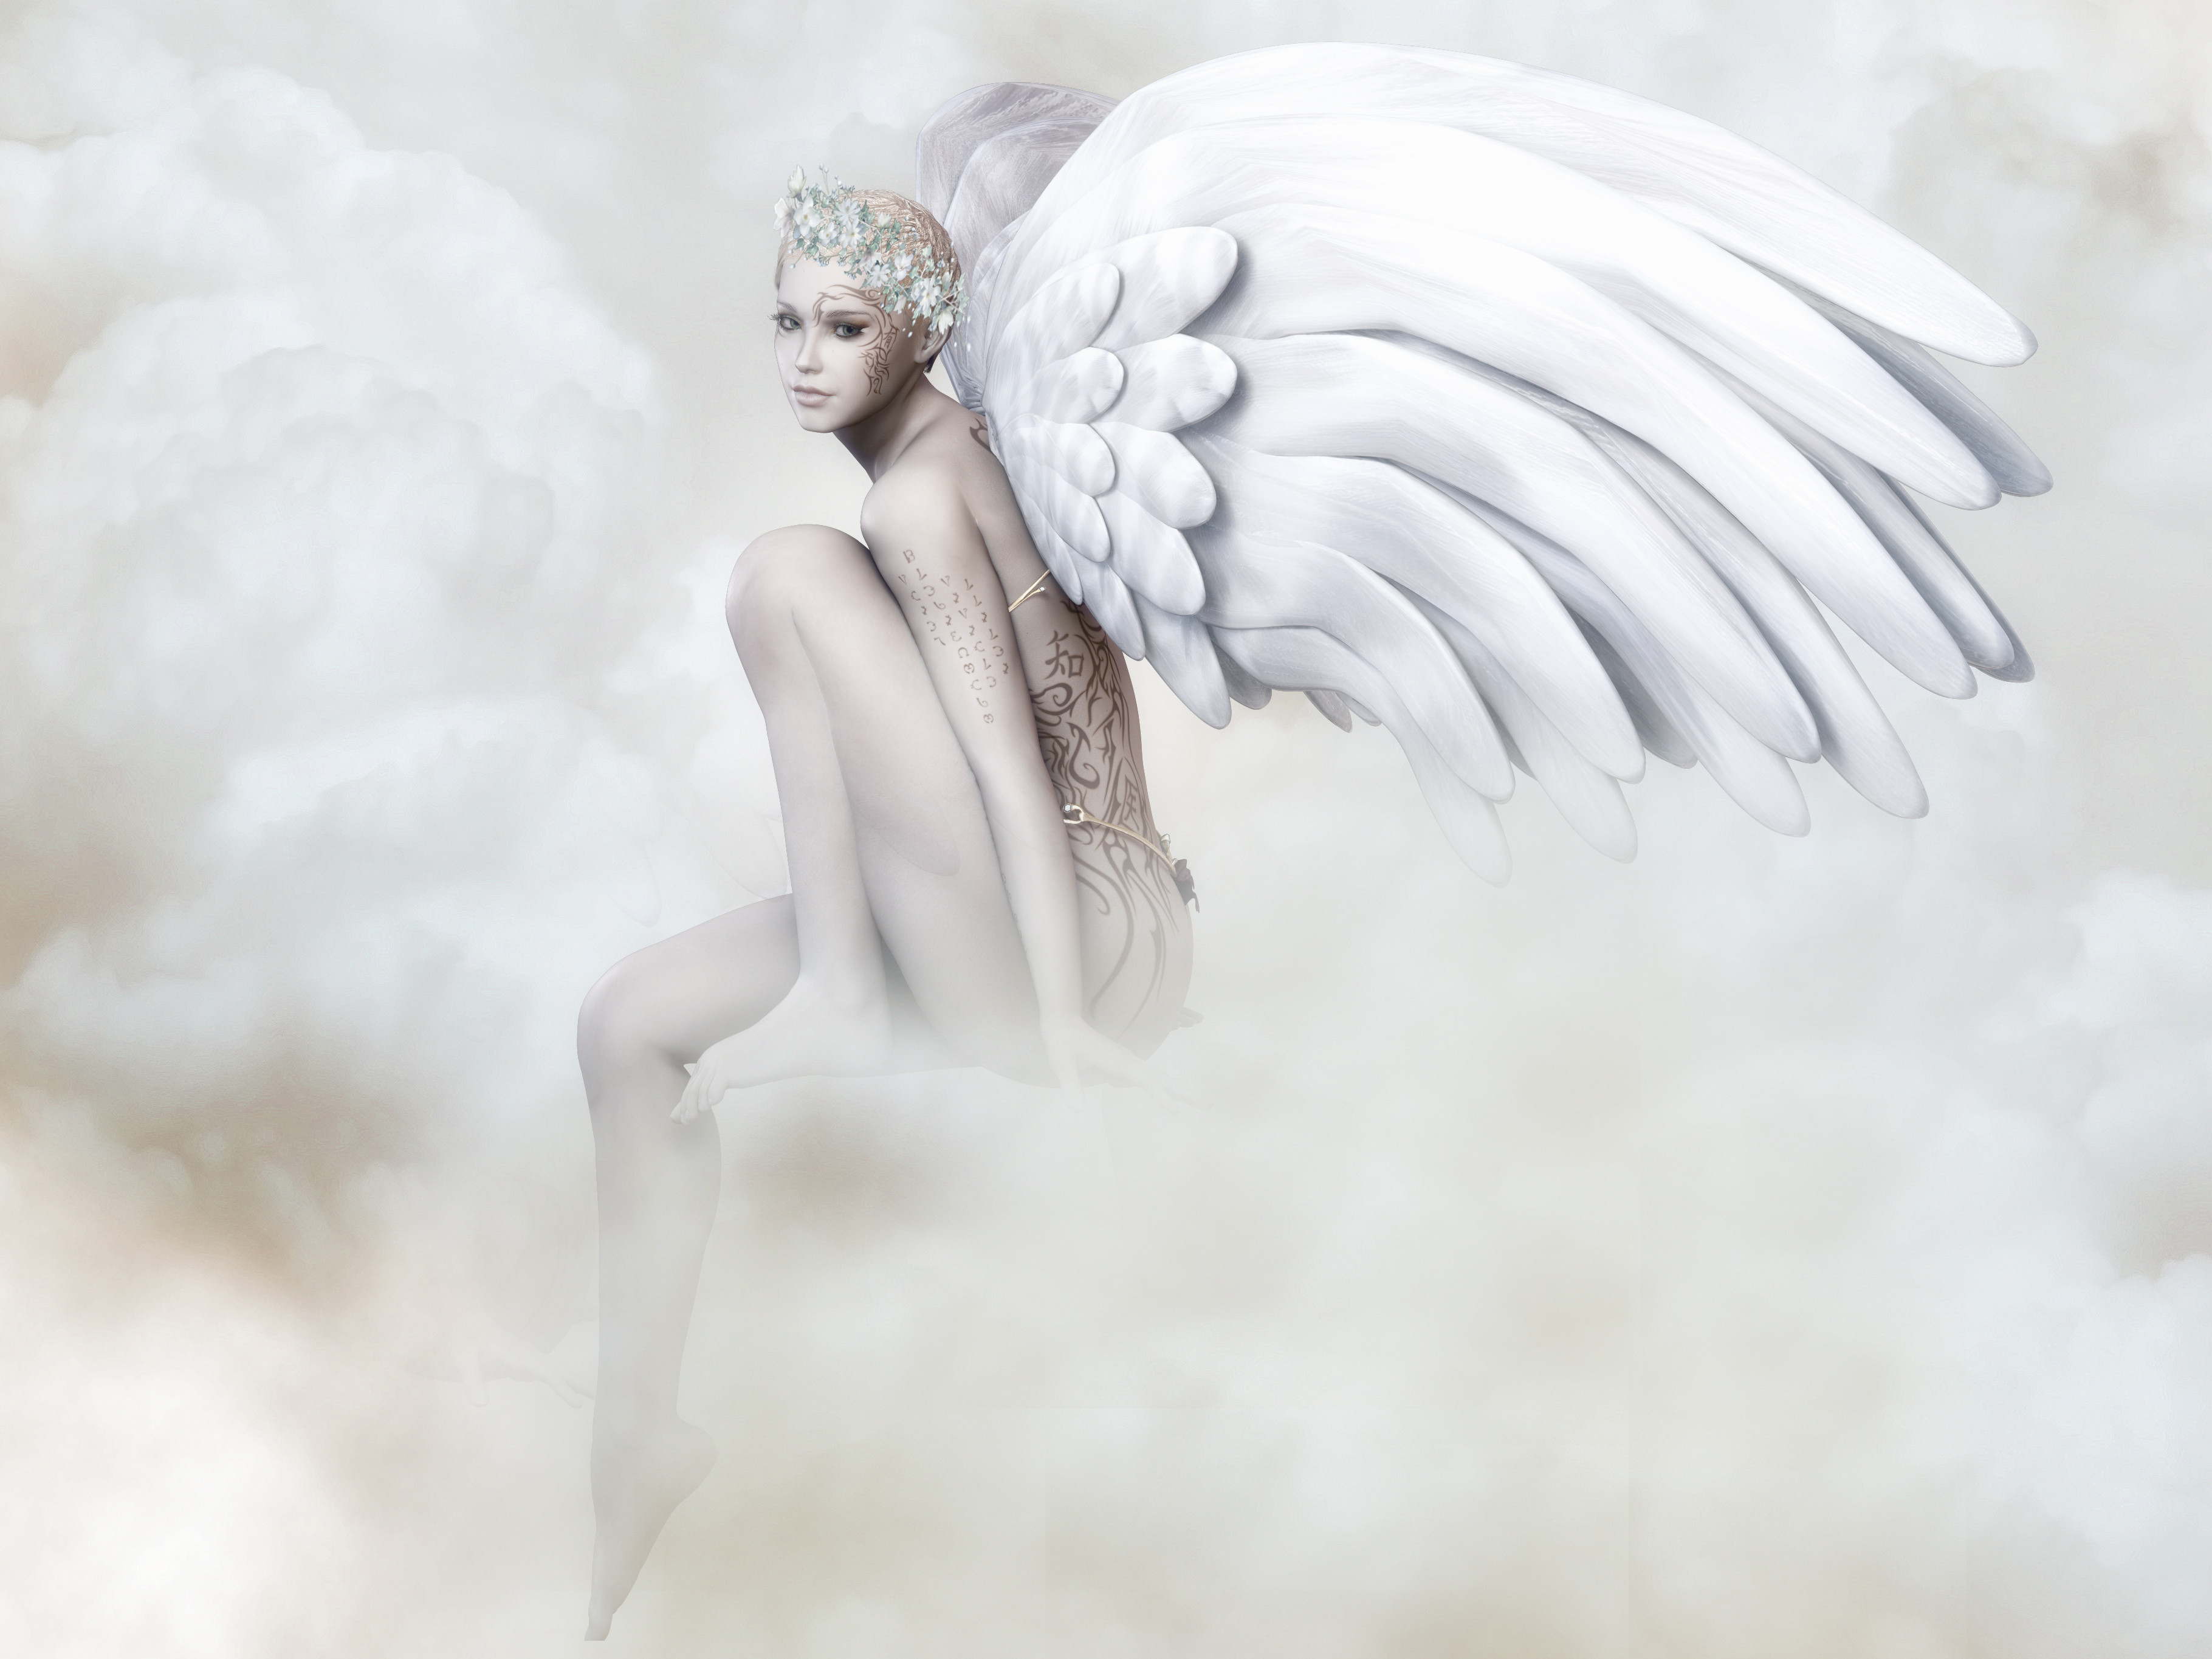 27137579-angel-art-wallpapers Družionica s Anđelima | Soul Art